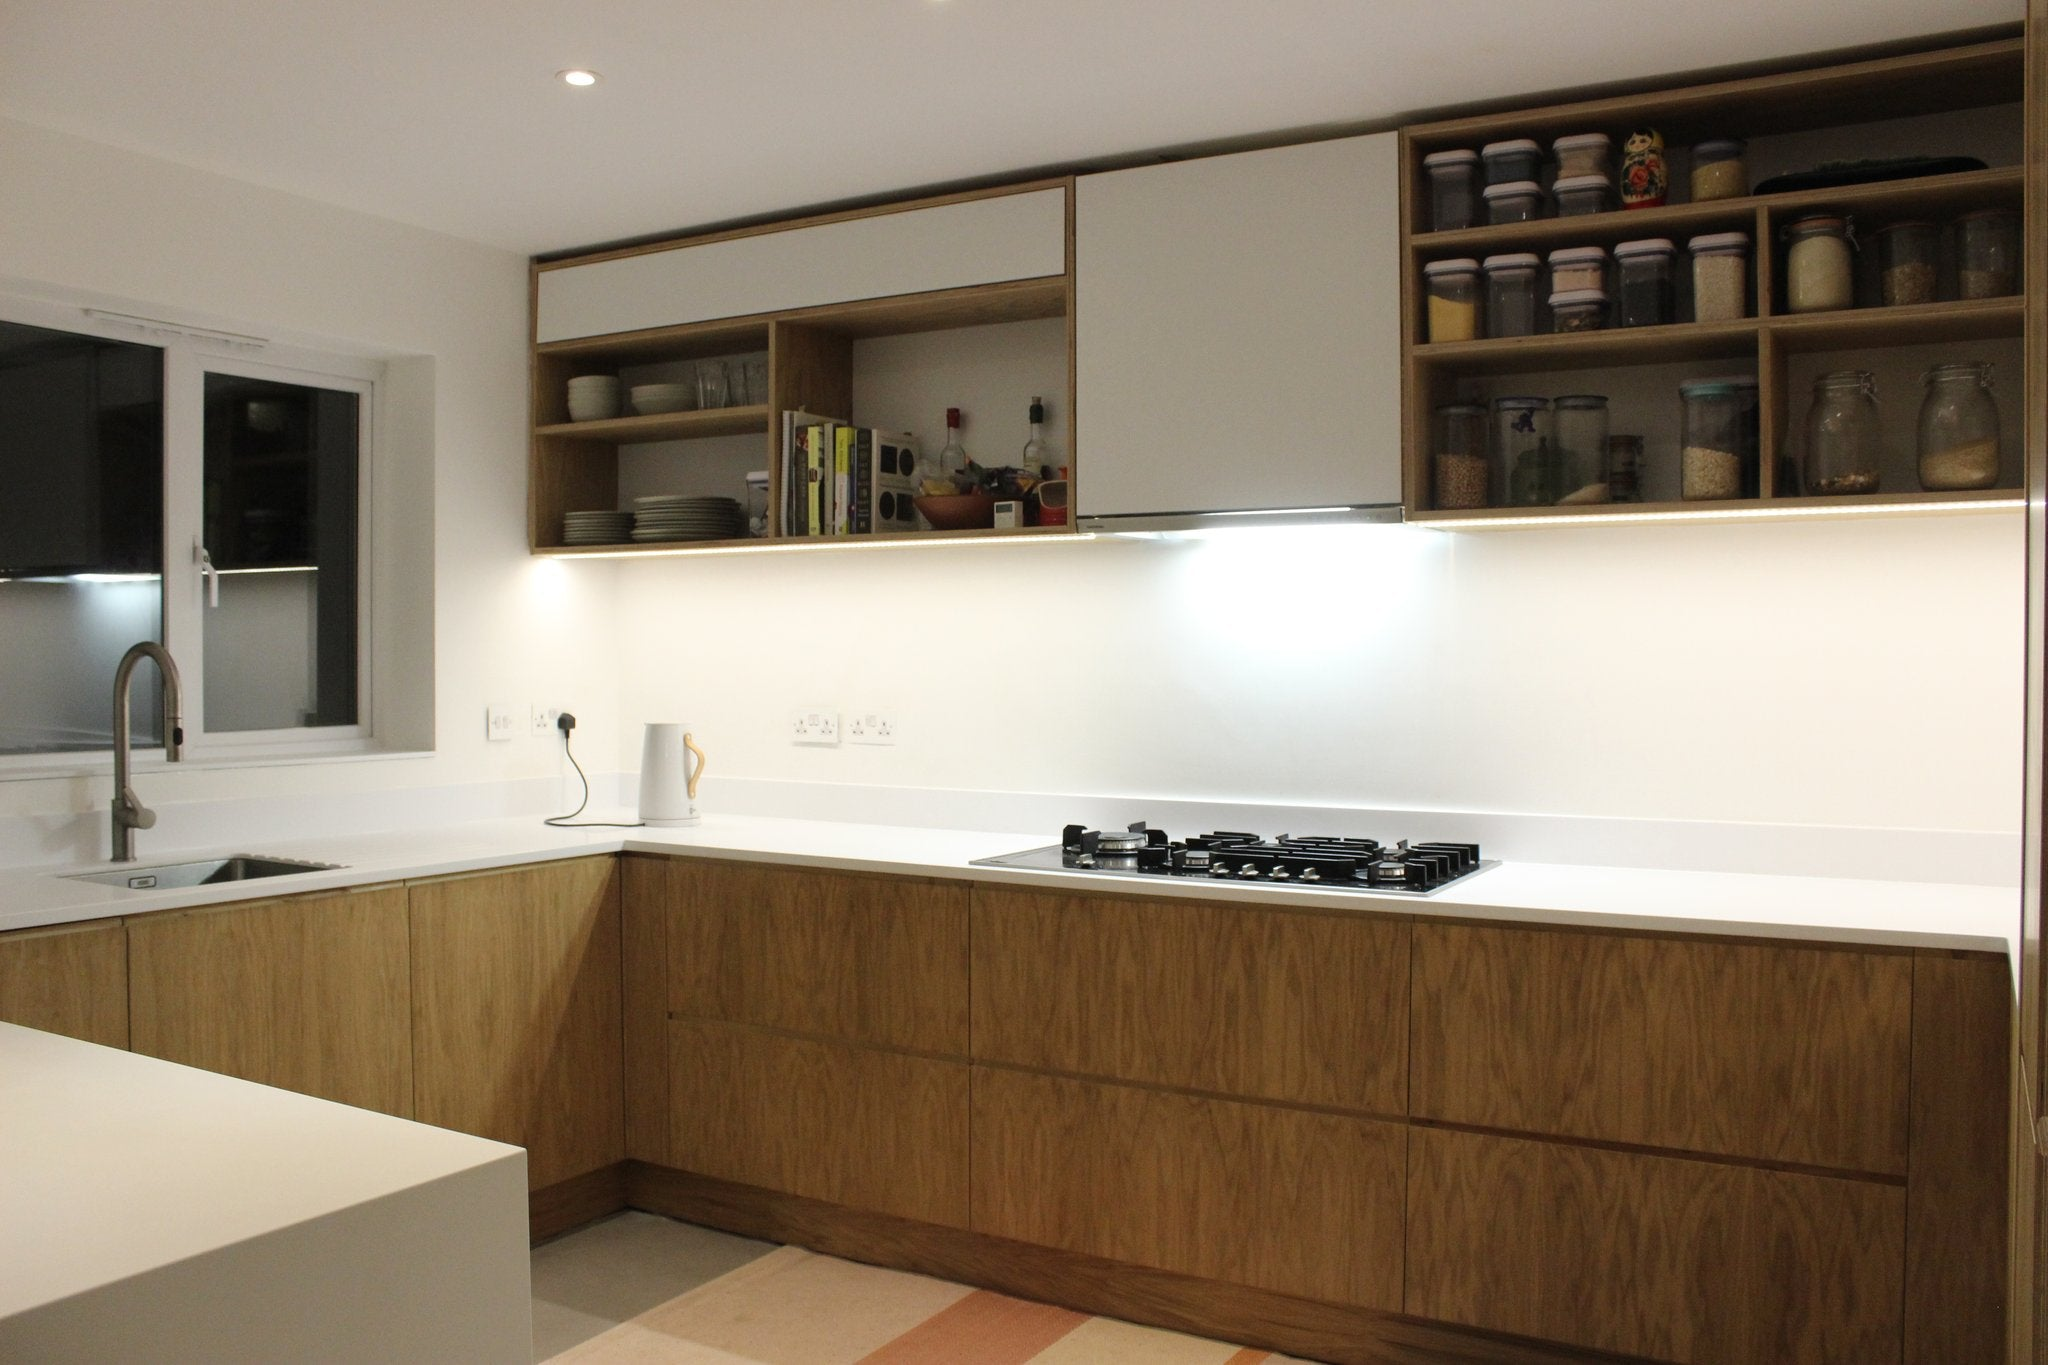 Bespoke plywood & oak kitchen made by Jon Grant London in Leyton.